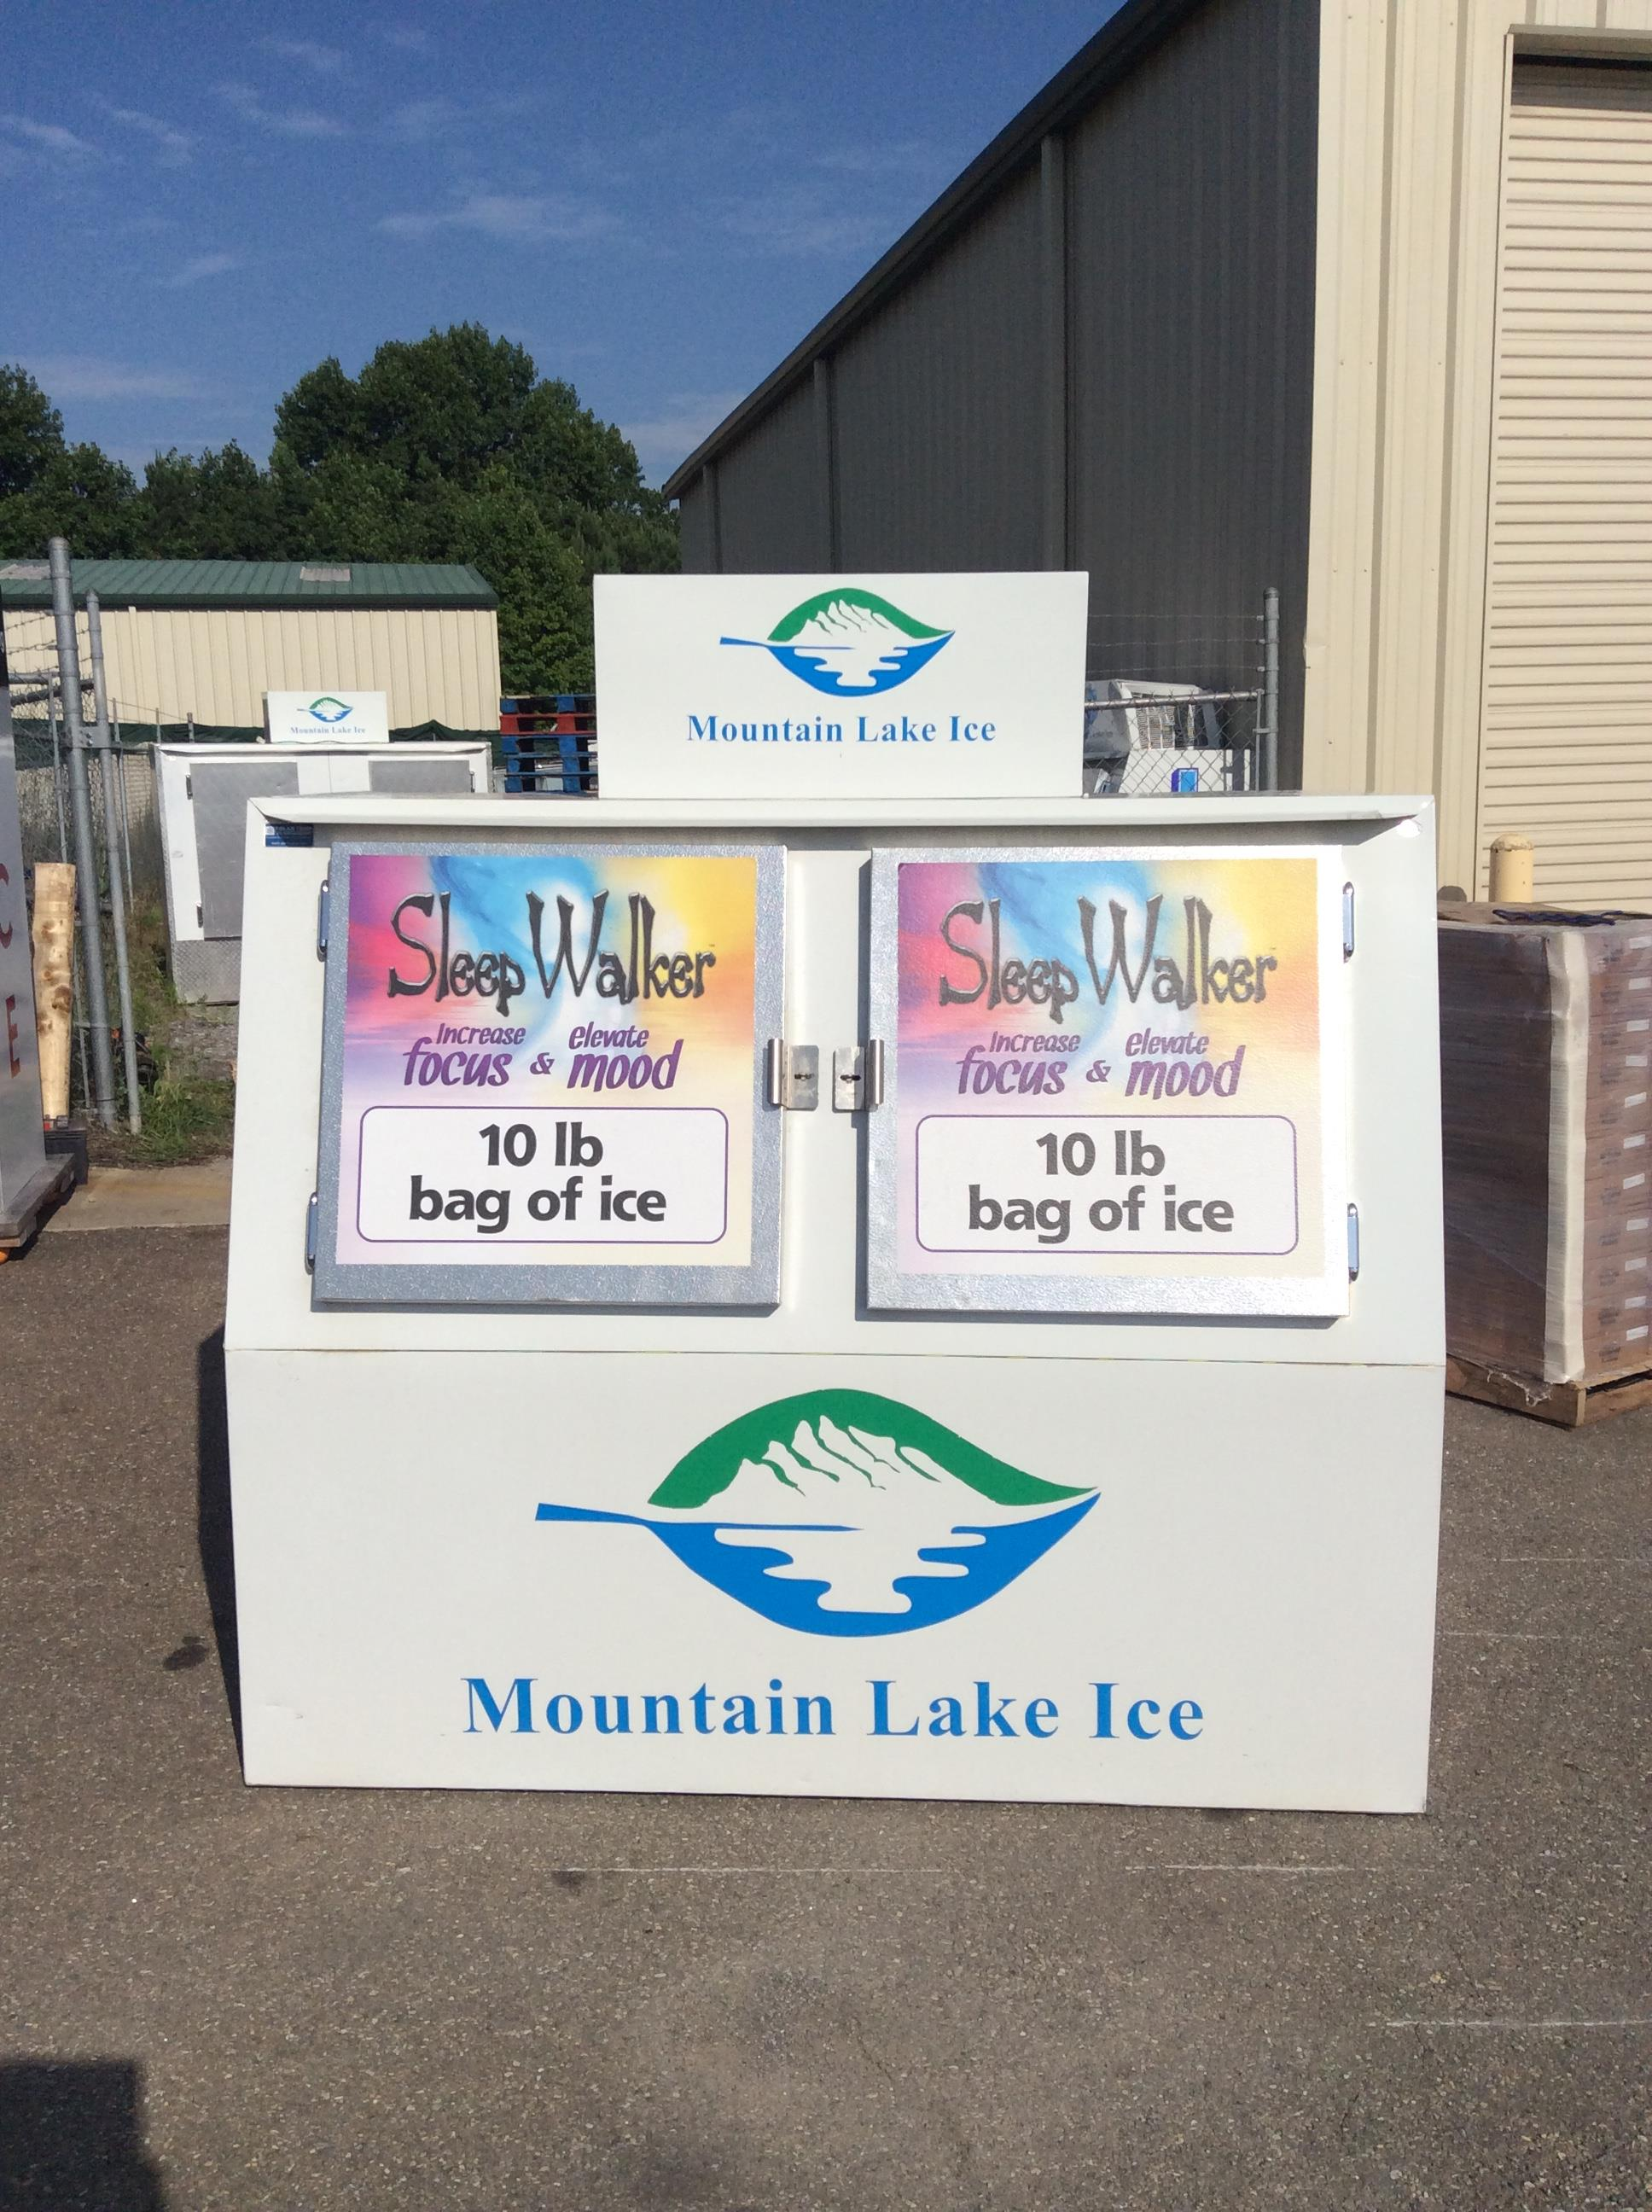 Mountain Lake Ice